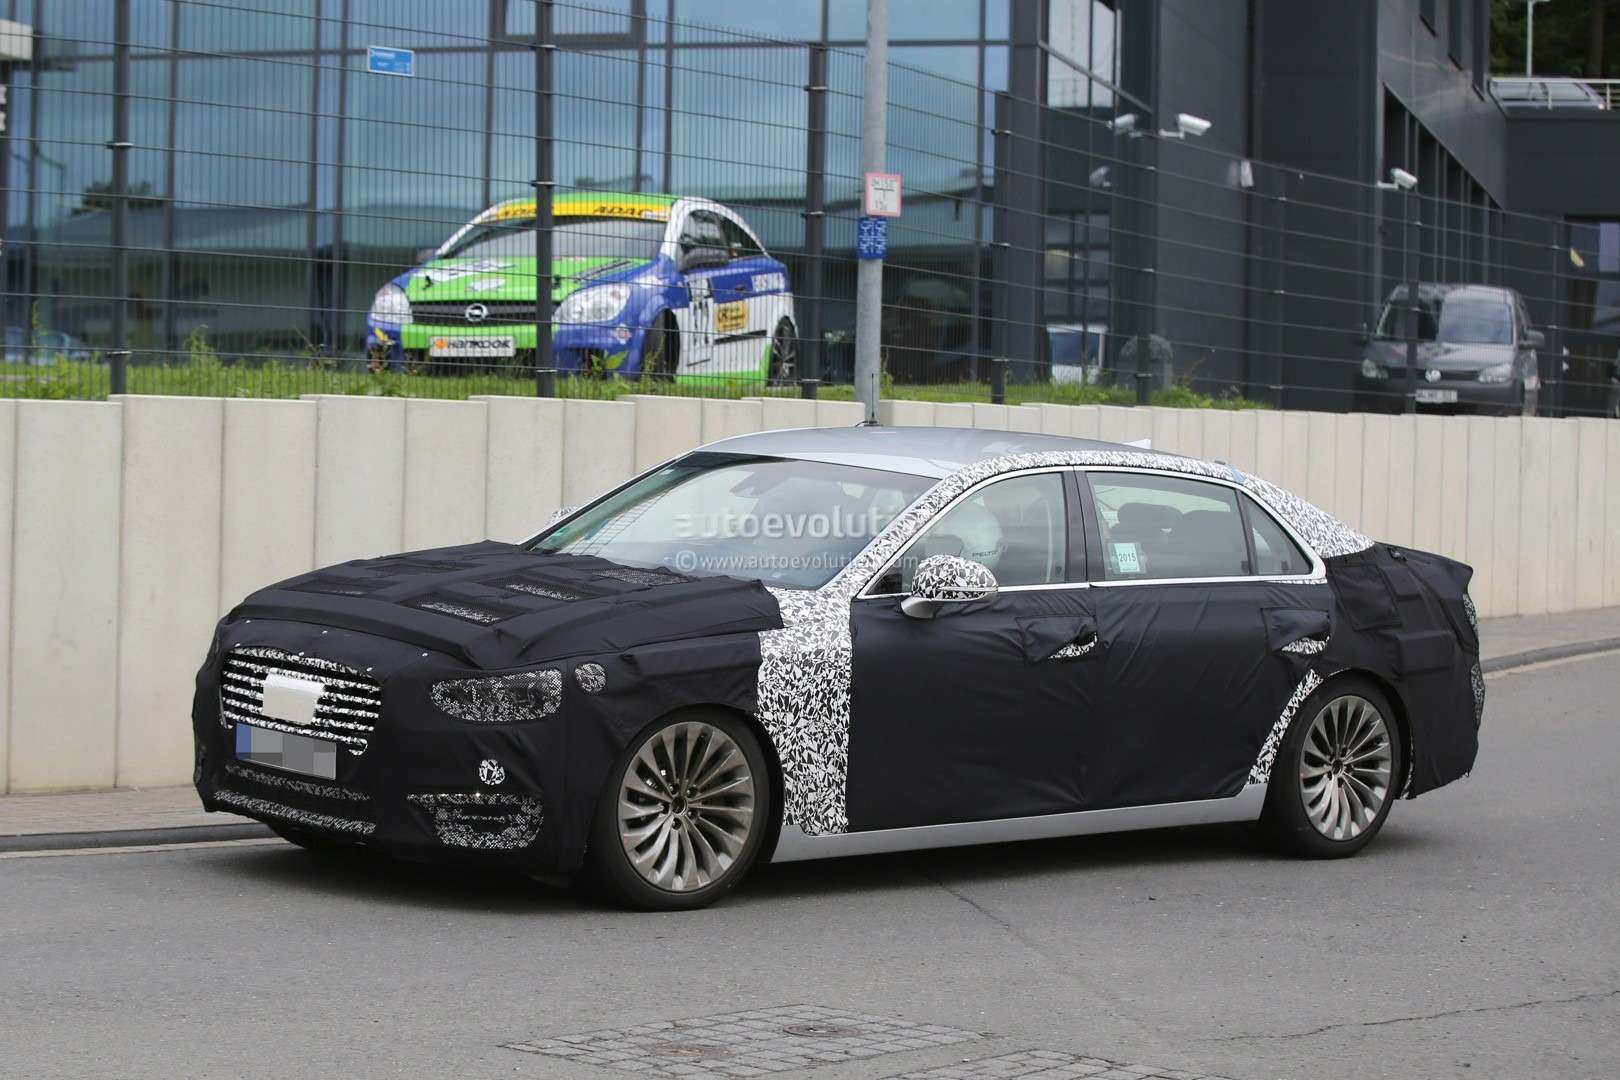 2017-hyundai-equus-spied-out-testing-in-germany-photo-gallery_3